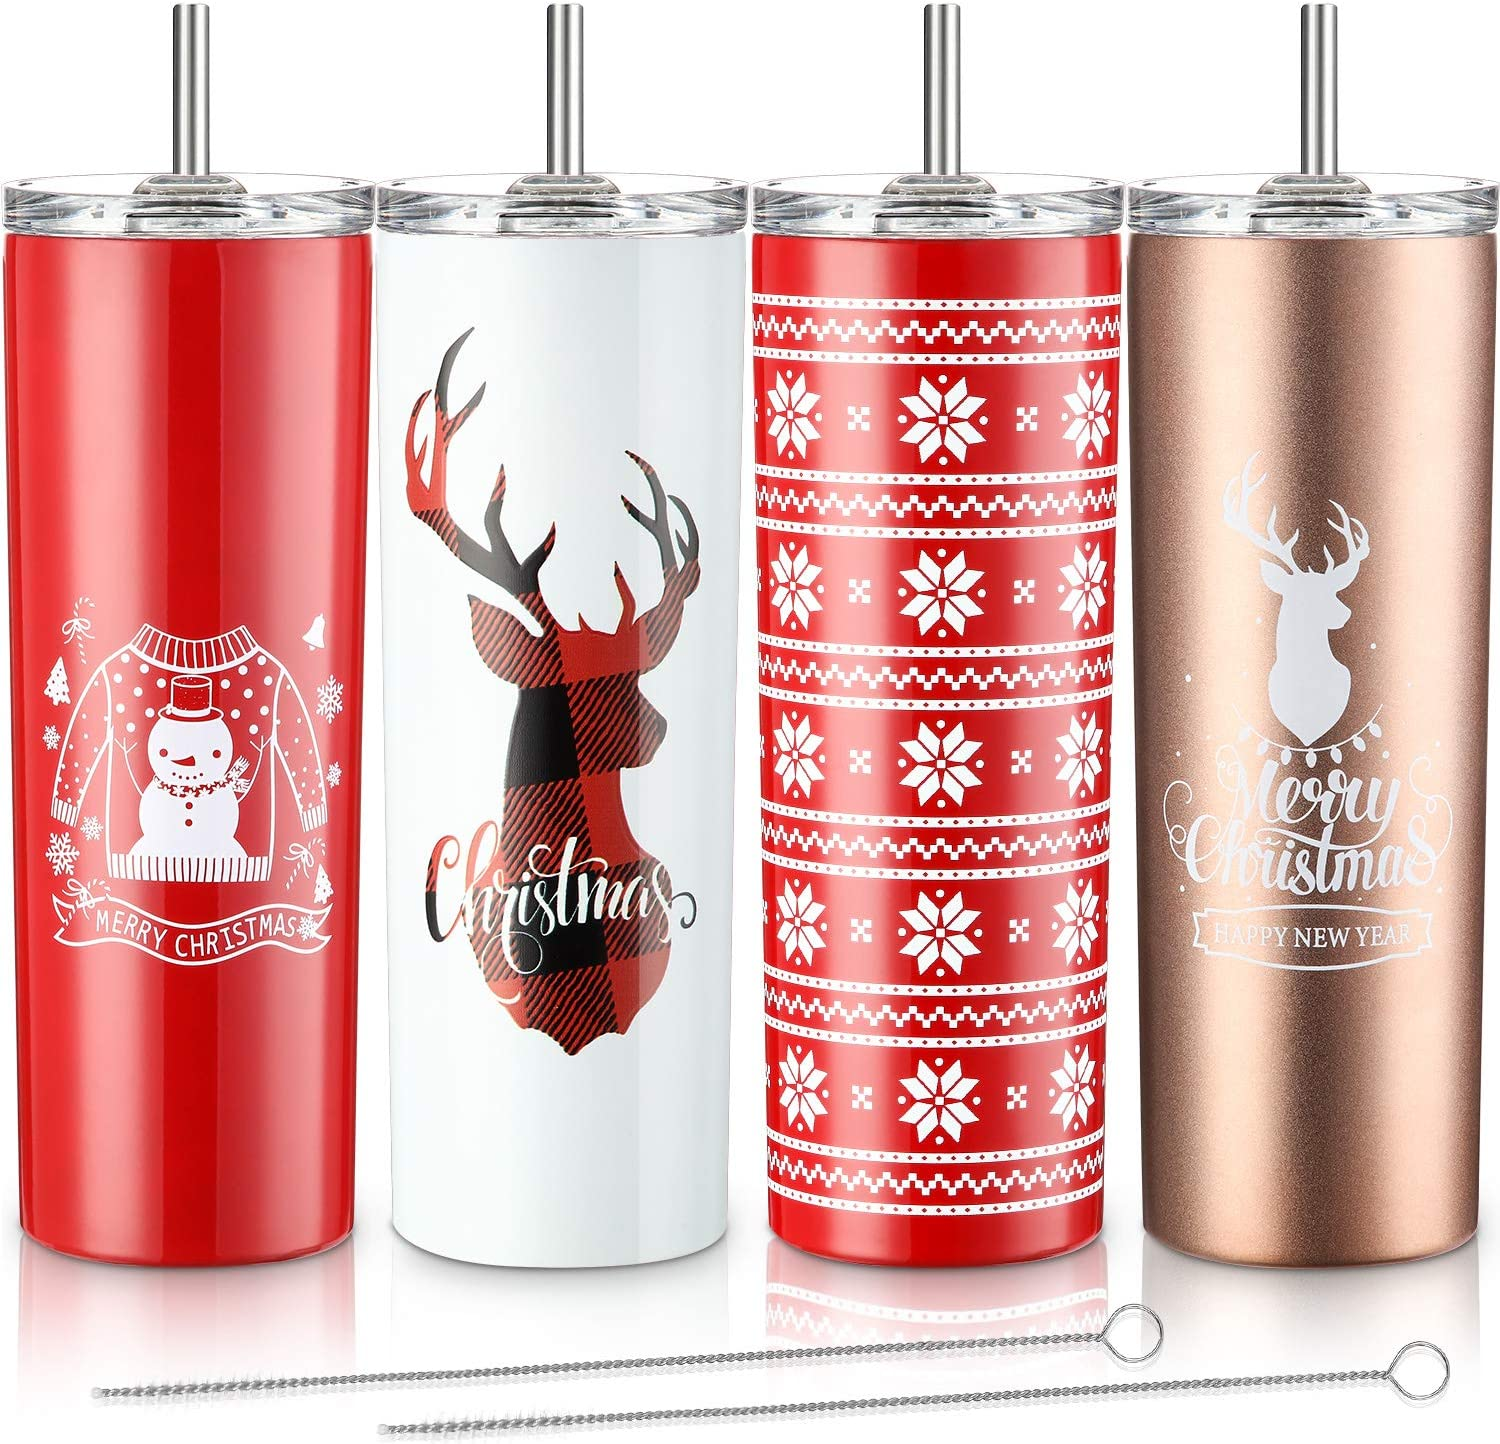 4 Pieces Classic Tumbler Stainless Steel Double-Insulated Water Tumbler Cup with Lid and Straw 20 oz Vacuum Travel Mug Gift with Cleaning Brush, Christmas Style